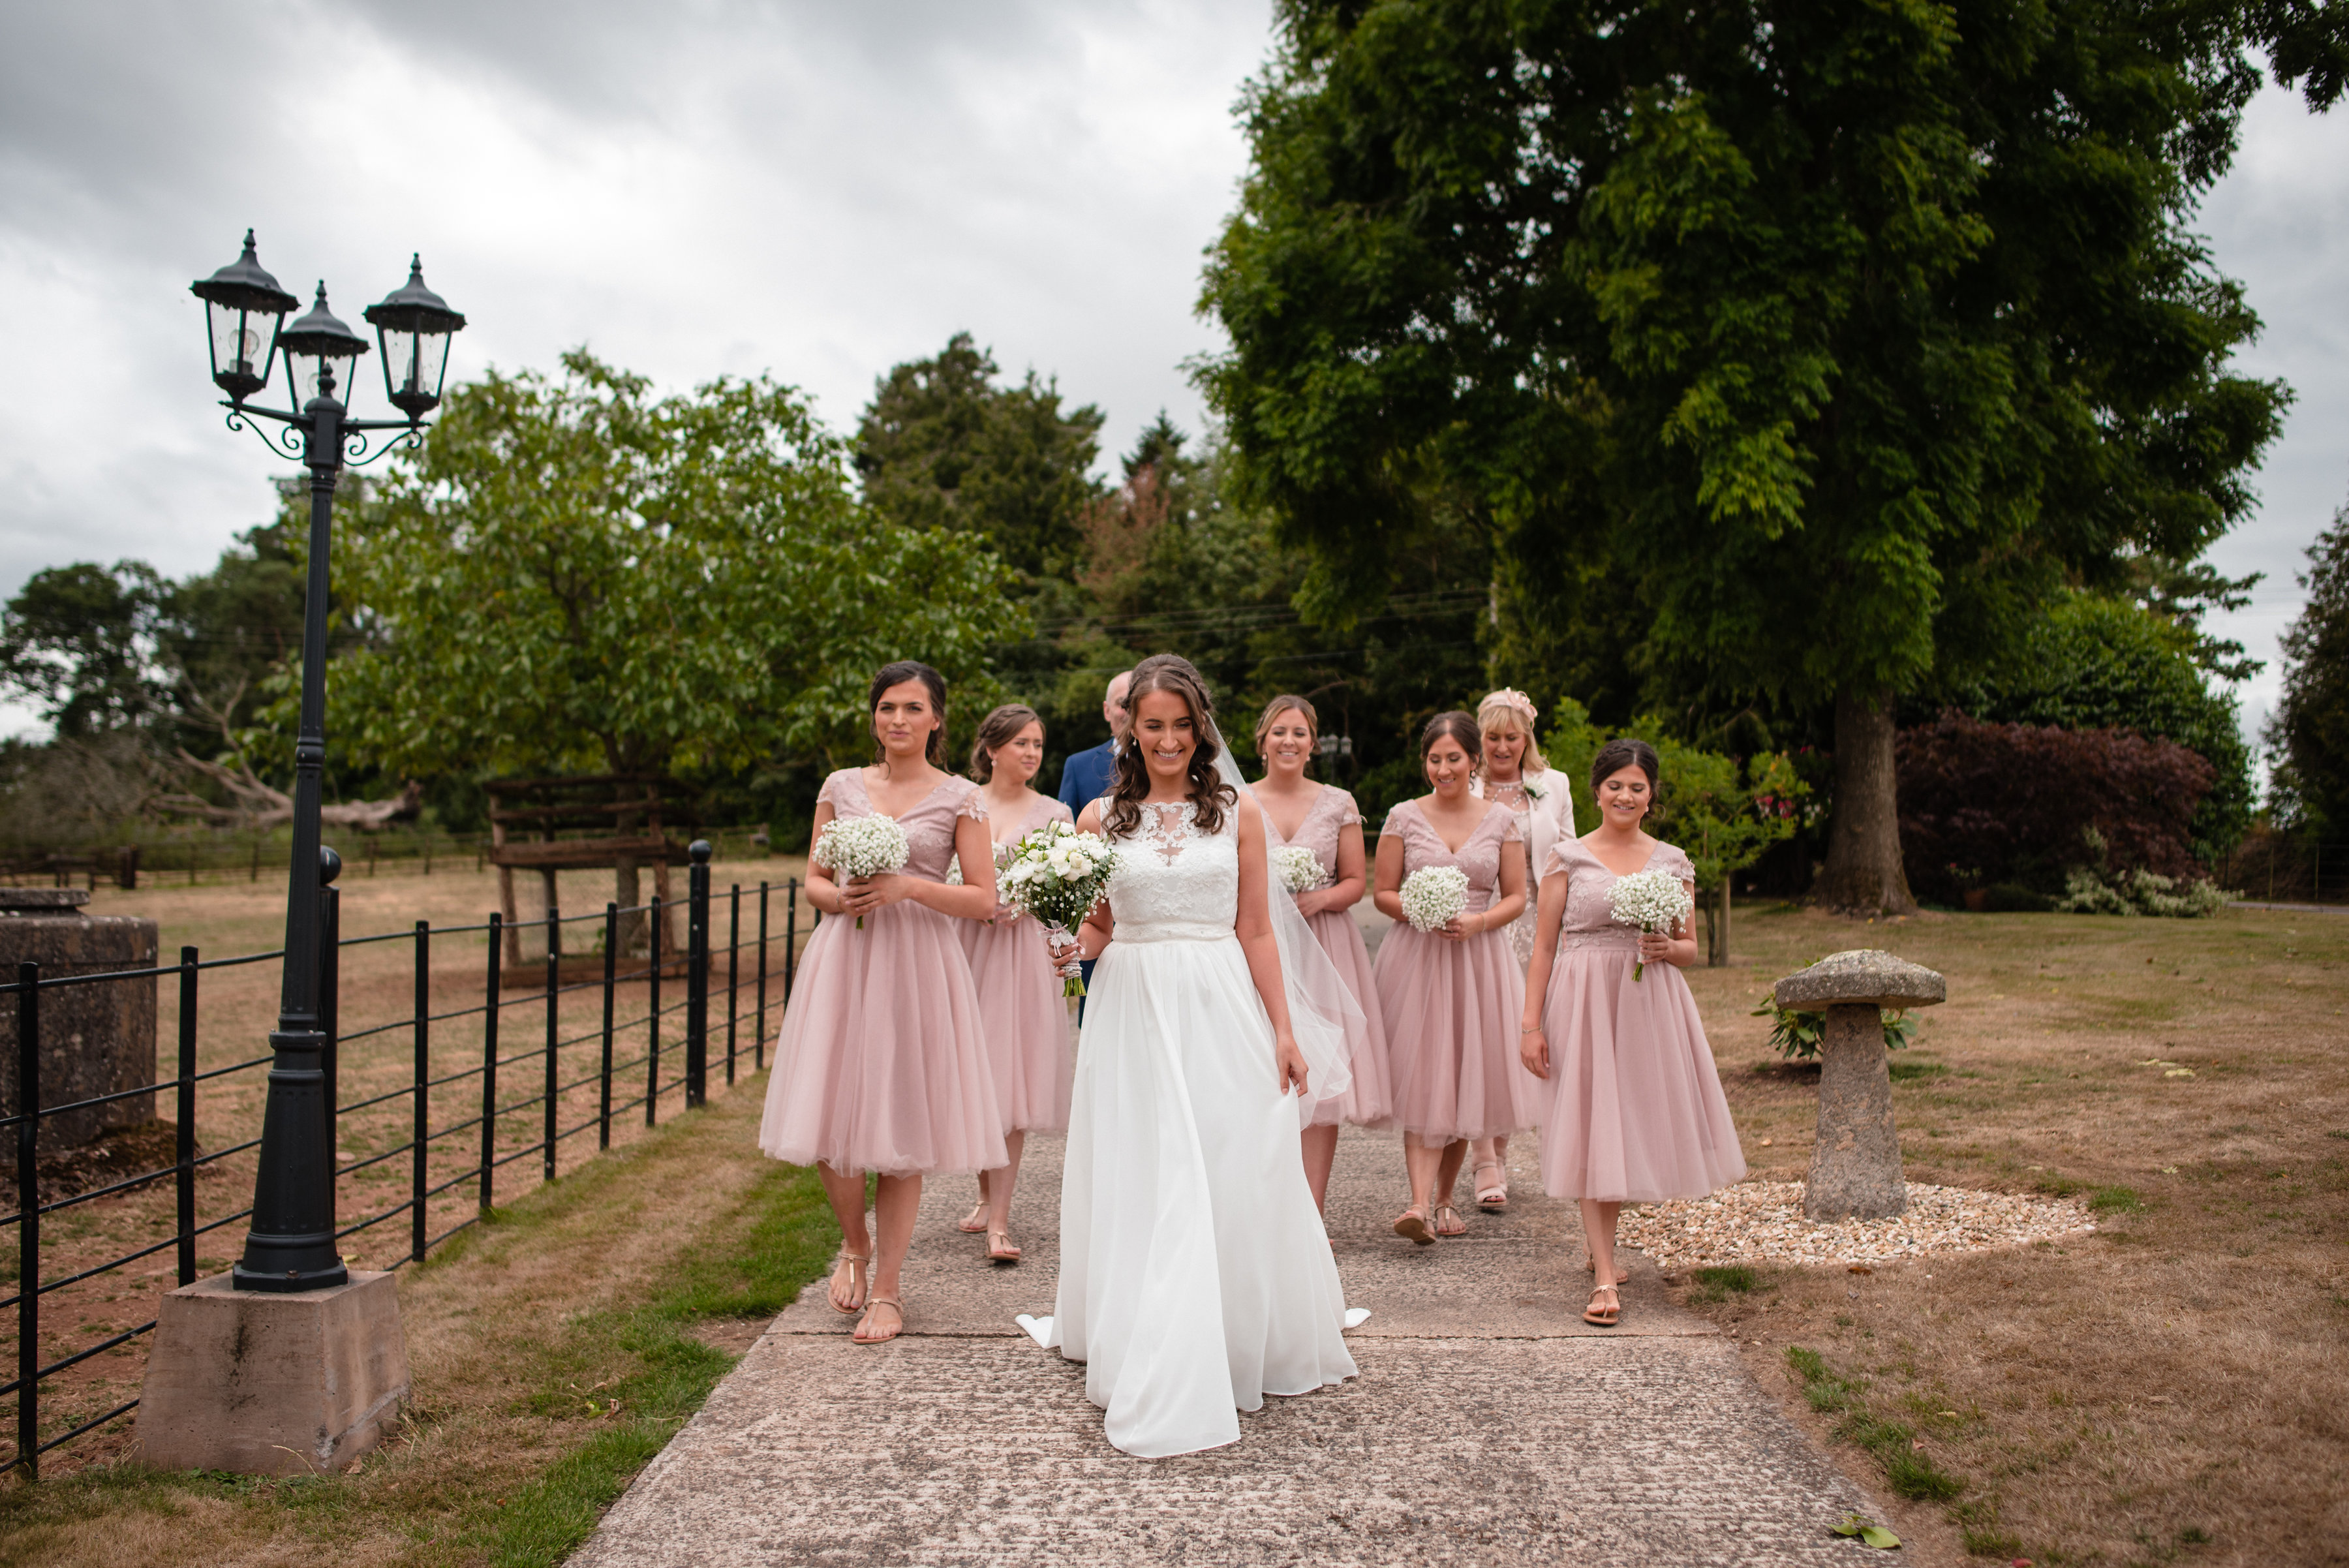 Bride and bridesmaid arrive at Upton Barn & Walled Garden